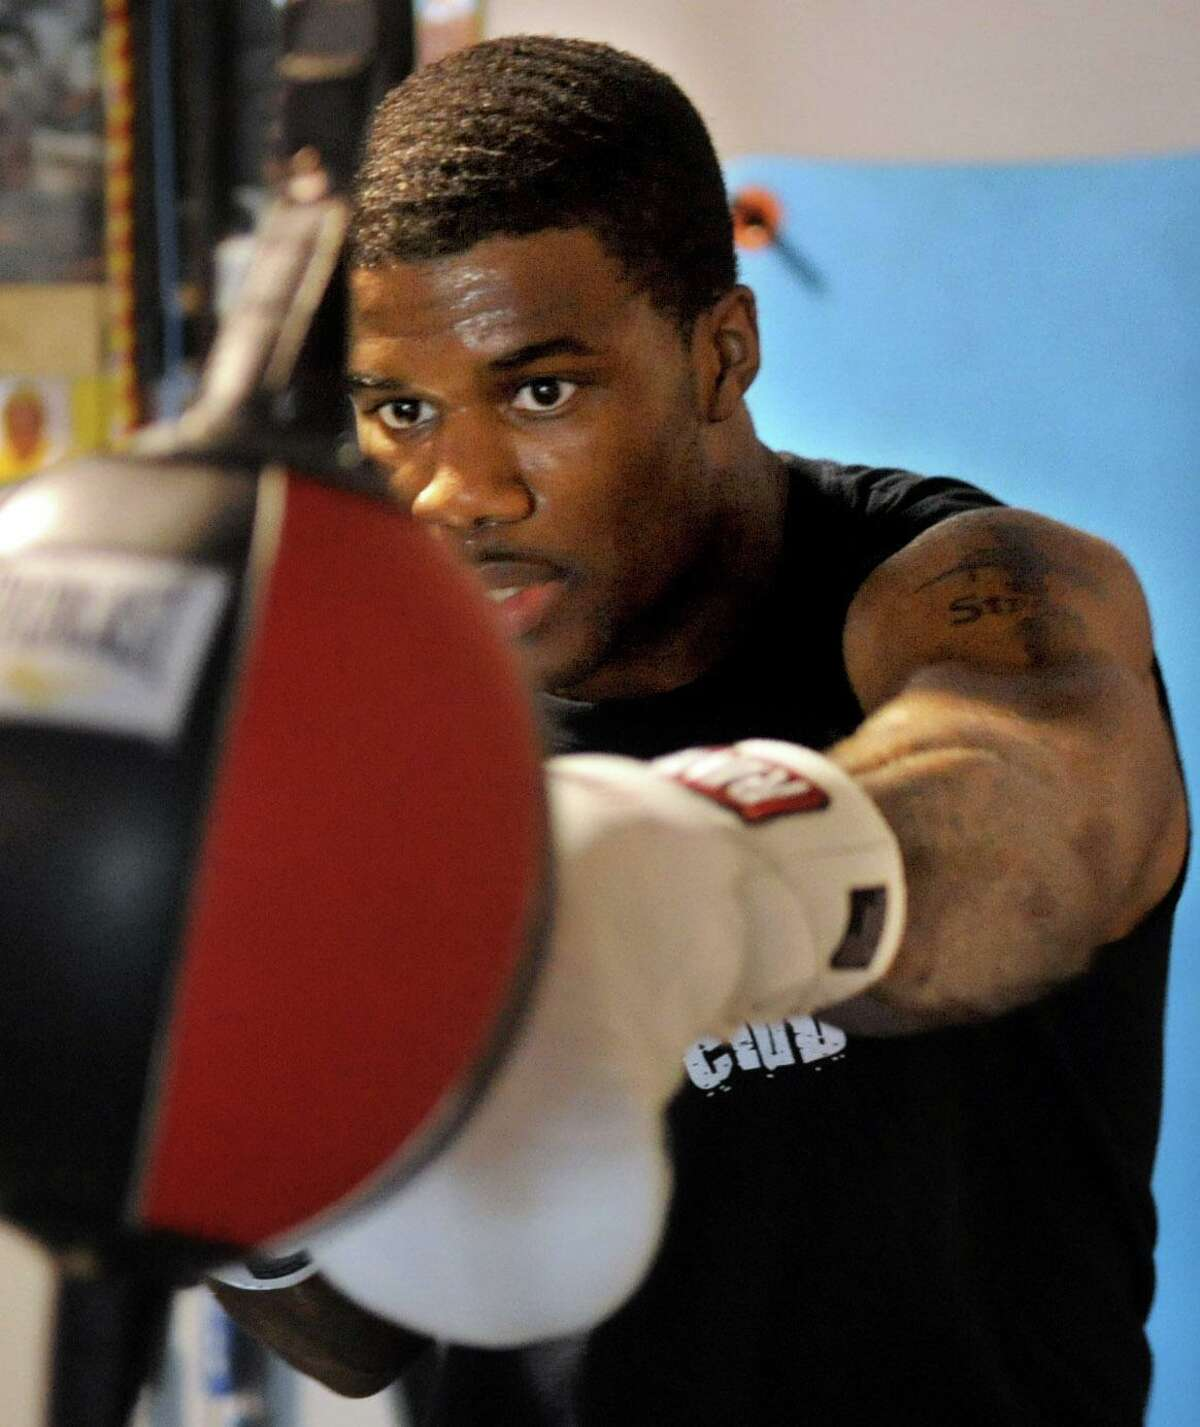 Chordale Booker trains at Revolution Fitness in Stamford on Thursday, July 5, 2012.